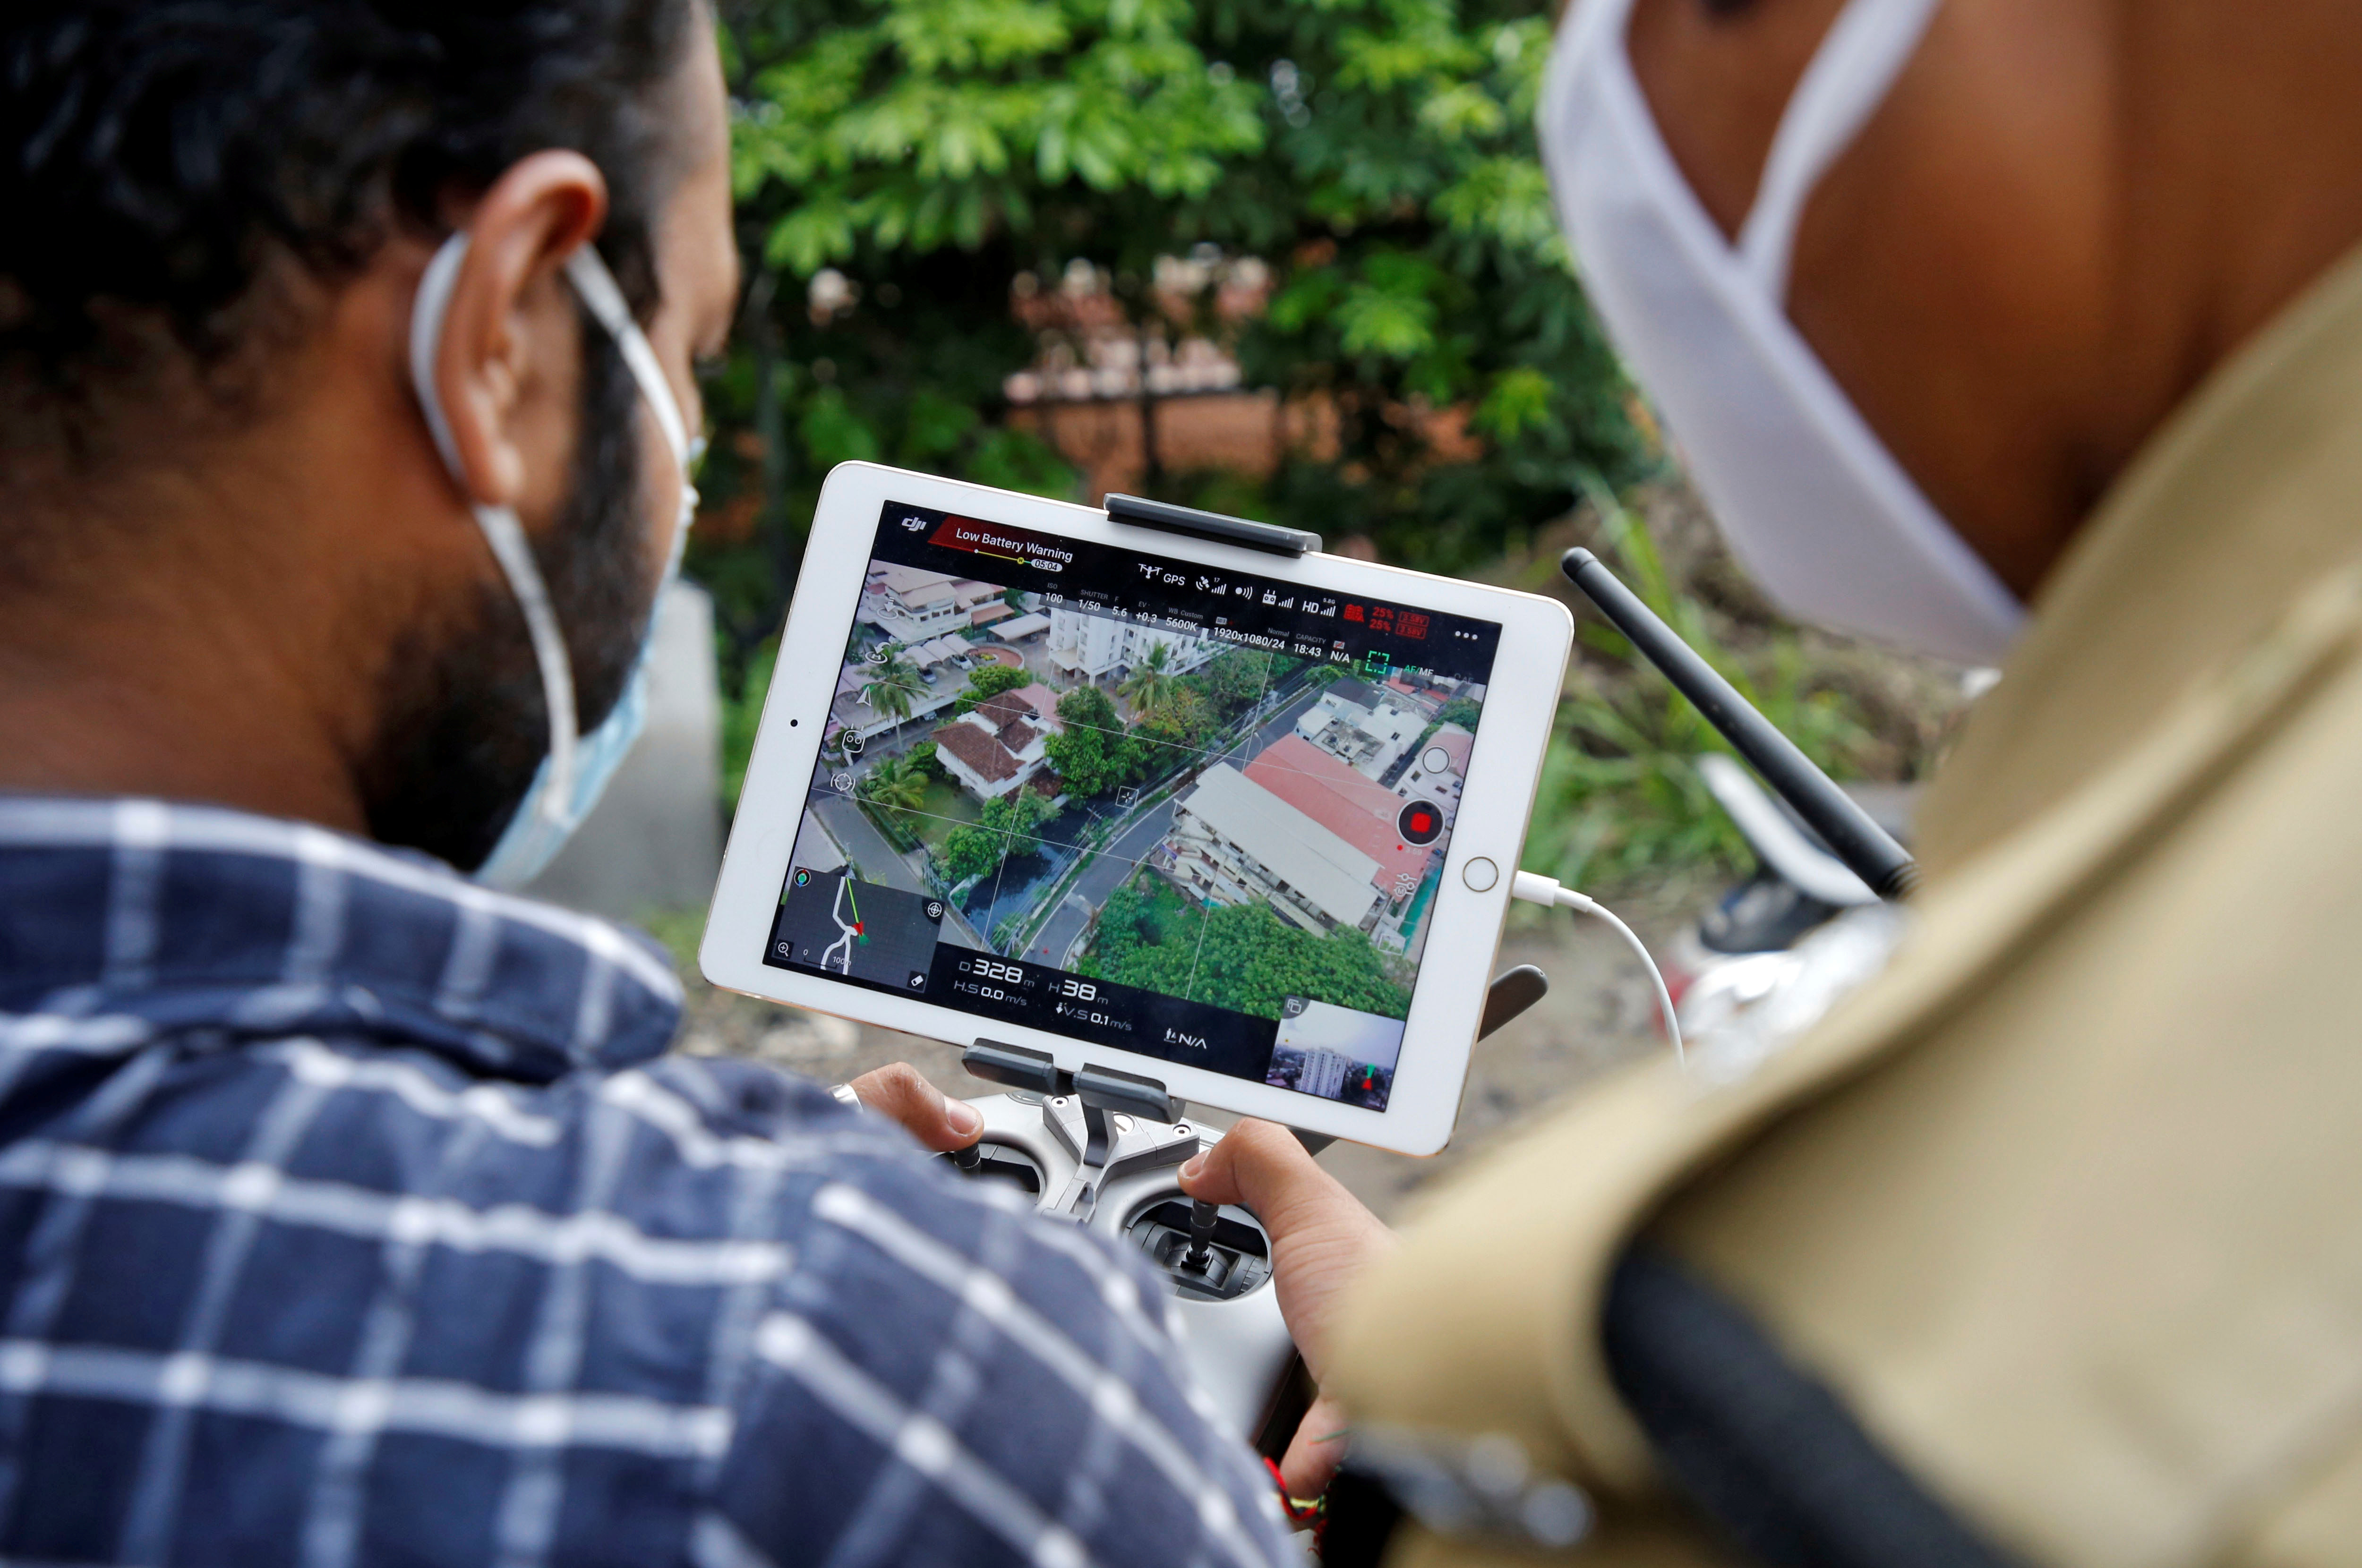 Police officers use a drone to monitor the movement of people in a residential area after the area was declared a hot spot by government officials during a nationwide lockdown to slow the spreading of the coronavirus disease (COVID-19) in Kochi, India, April 24, 2020. REUTERS/Sivaram V - RC2VAG90QXTN